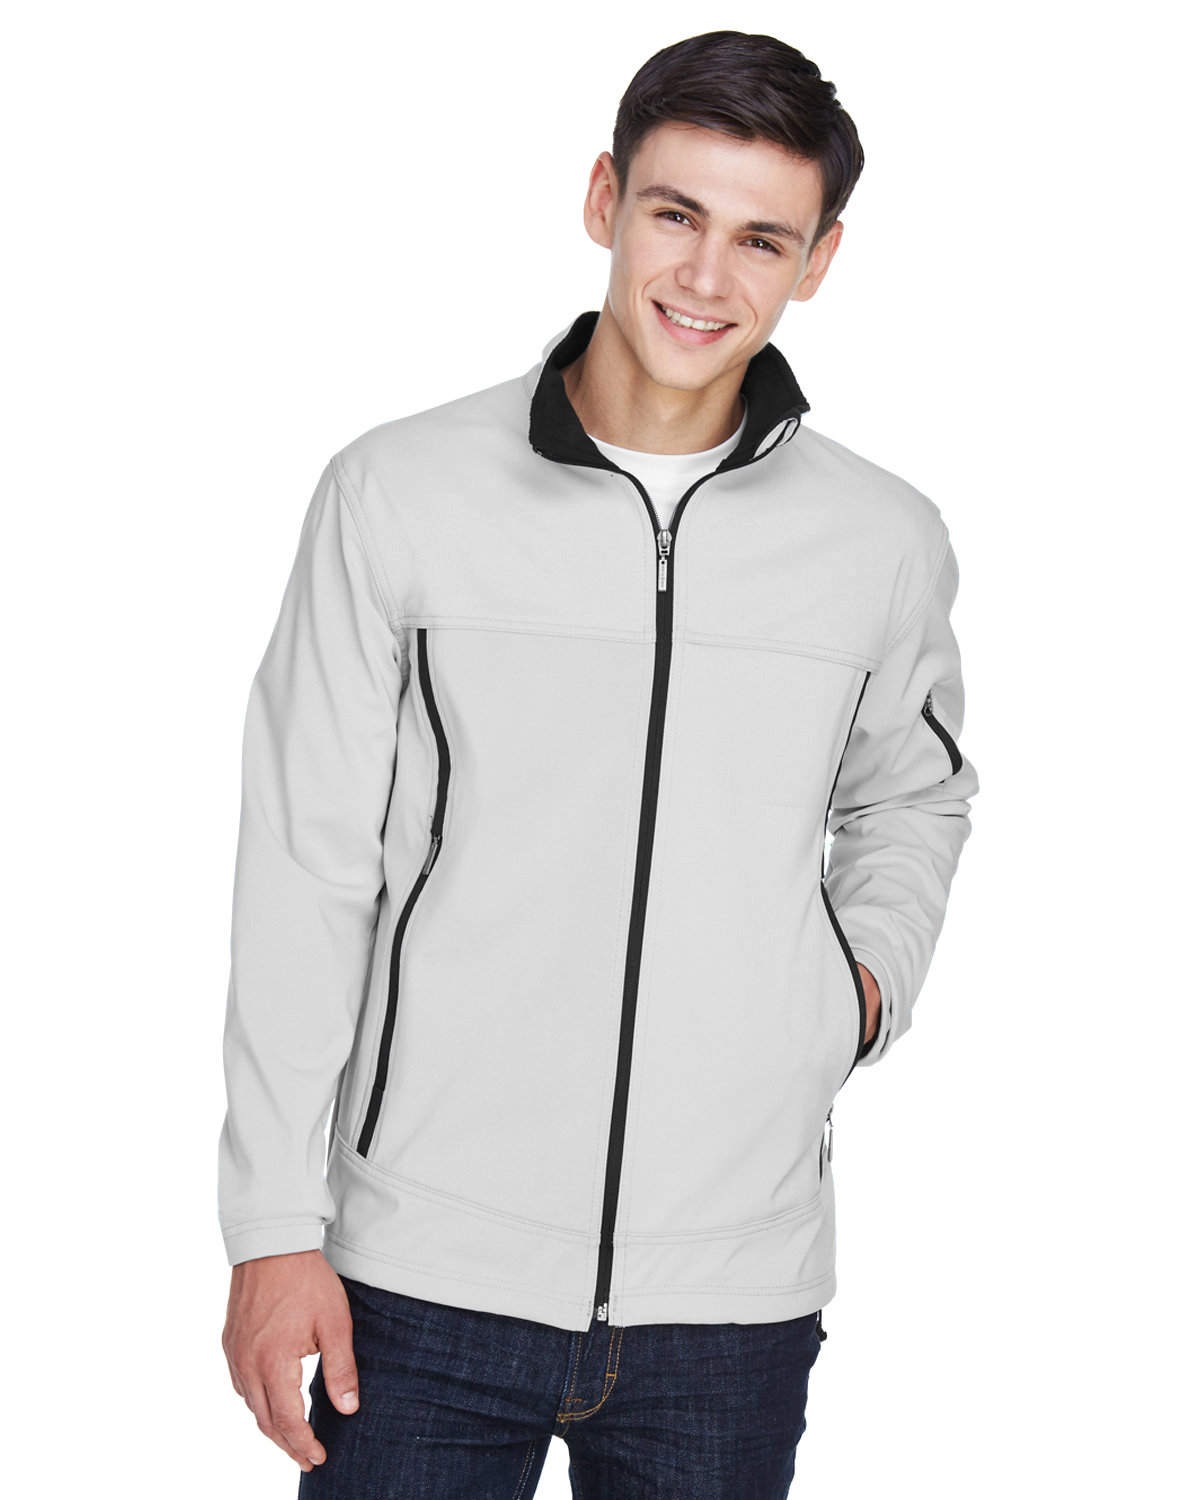 North End Men's Three-Layer Fleece Bonded Performance Soft Shell Jacket NATURAL STONE